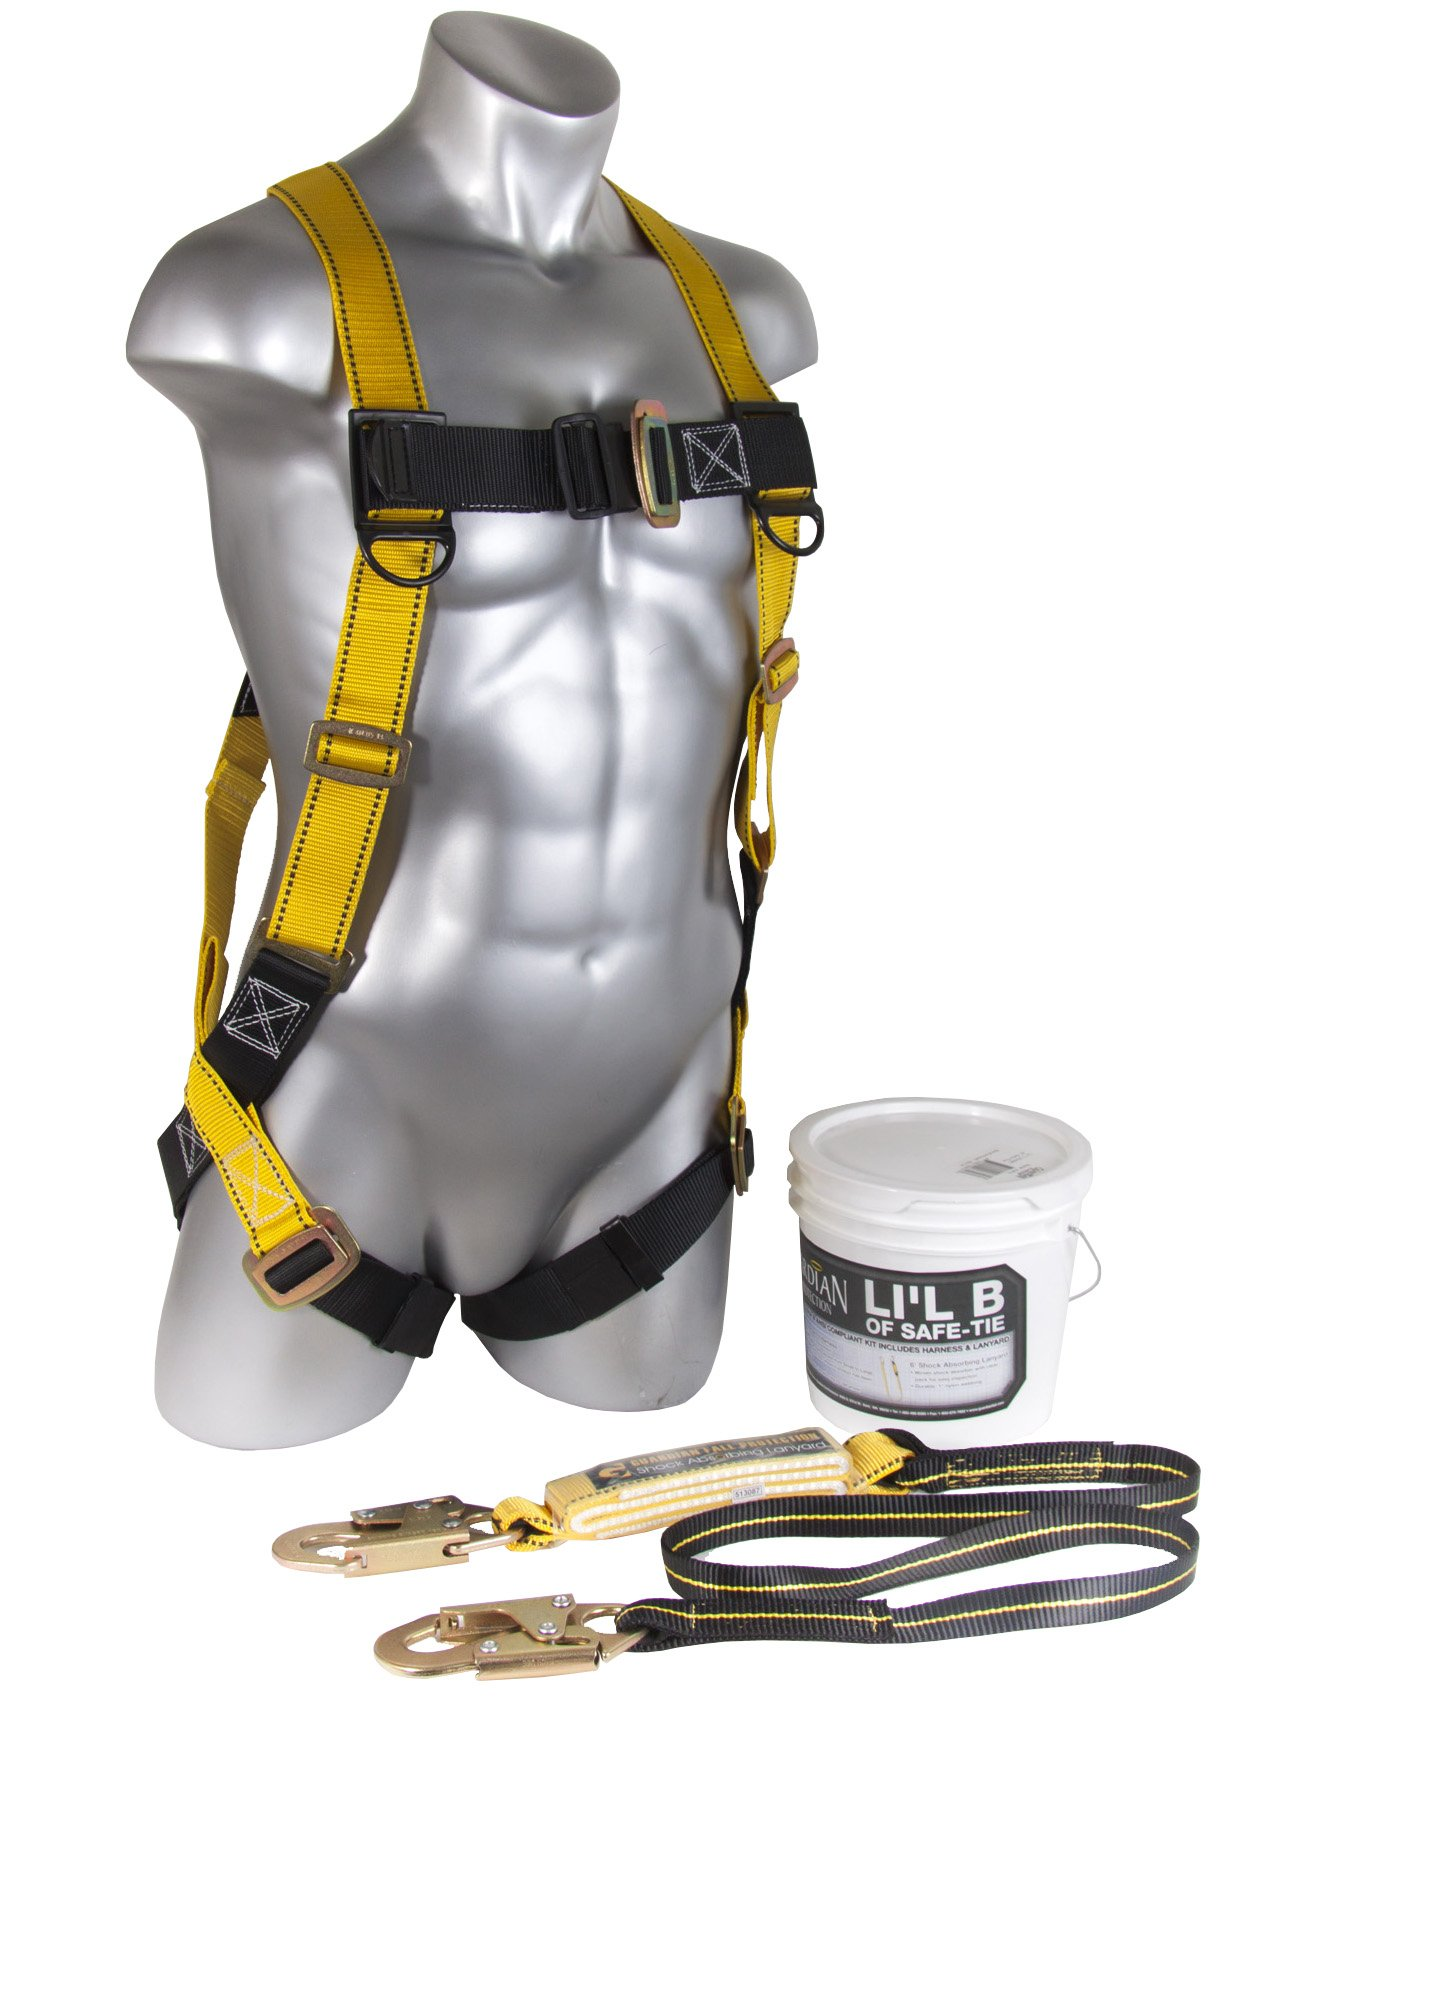 Guardian Fall Protection 00870 Li'l Bucket of Safe-Tie with HUV, Shock Absorbing Lanyard and Red Nylon Bag by Guardian Fall Protection